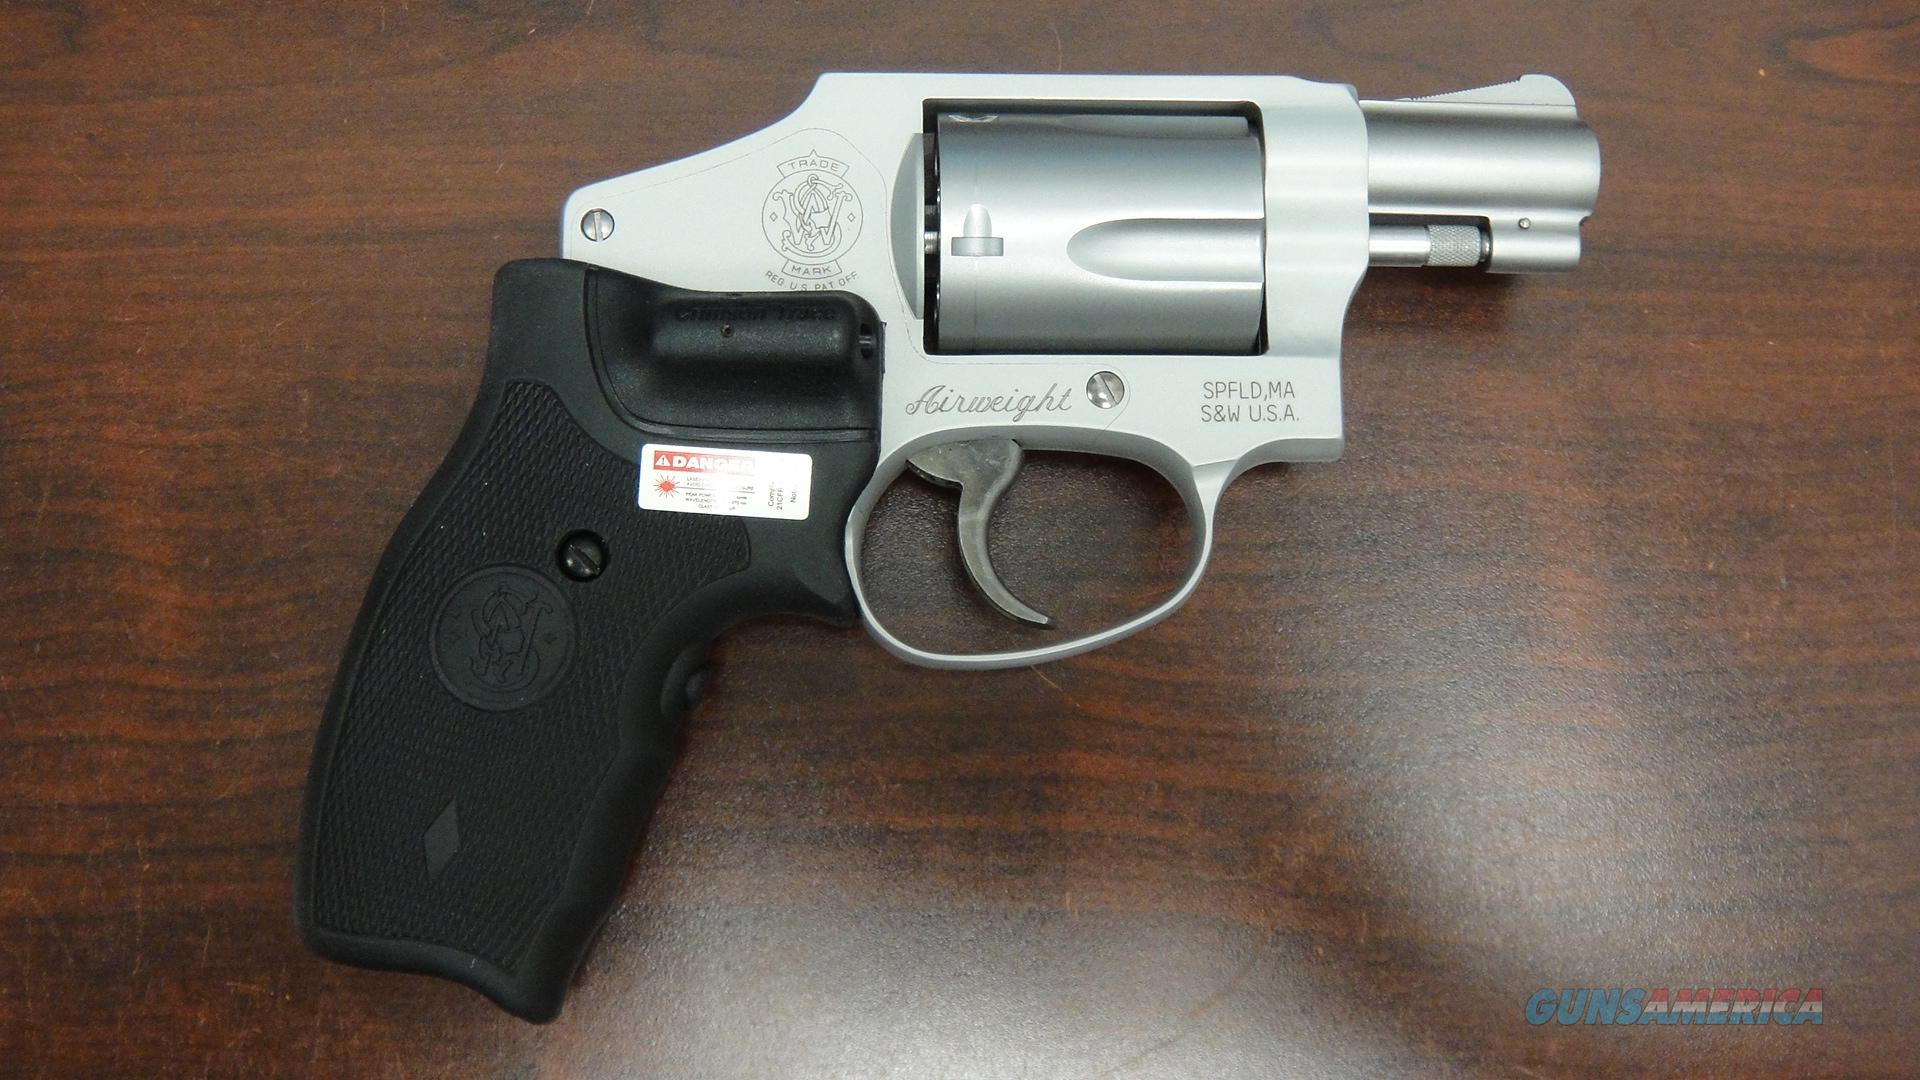 Smith and Wesson Model 642-2 With Crimson Trace Grip  Guns > Pistols > Smith & Wesson Revolvers > Pocket Pistols